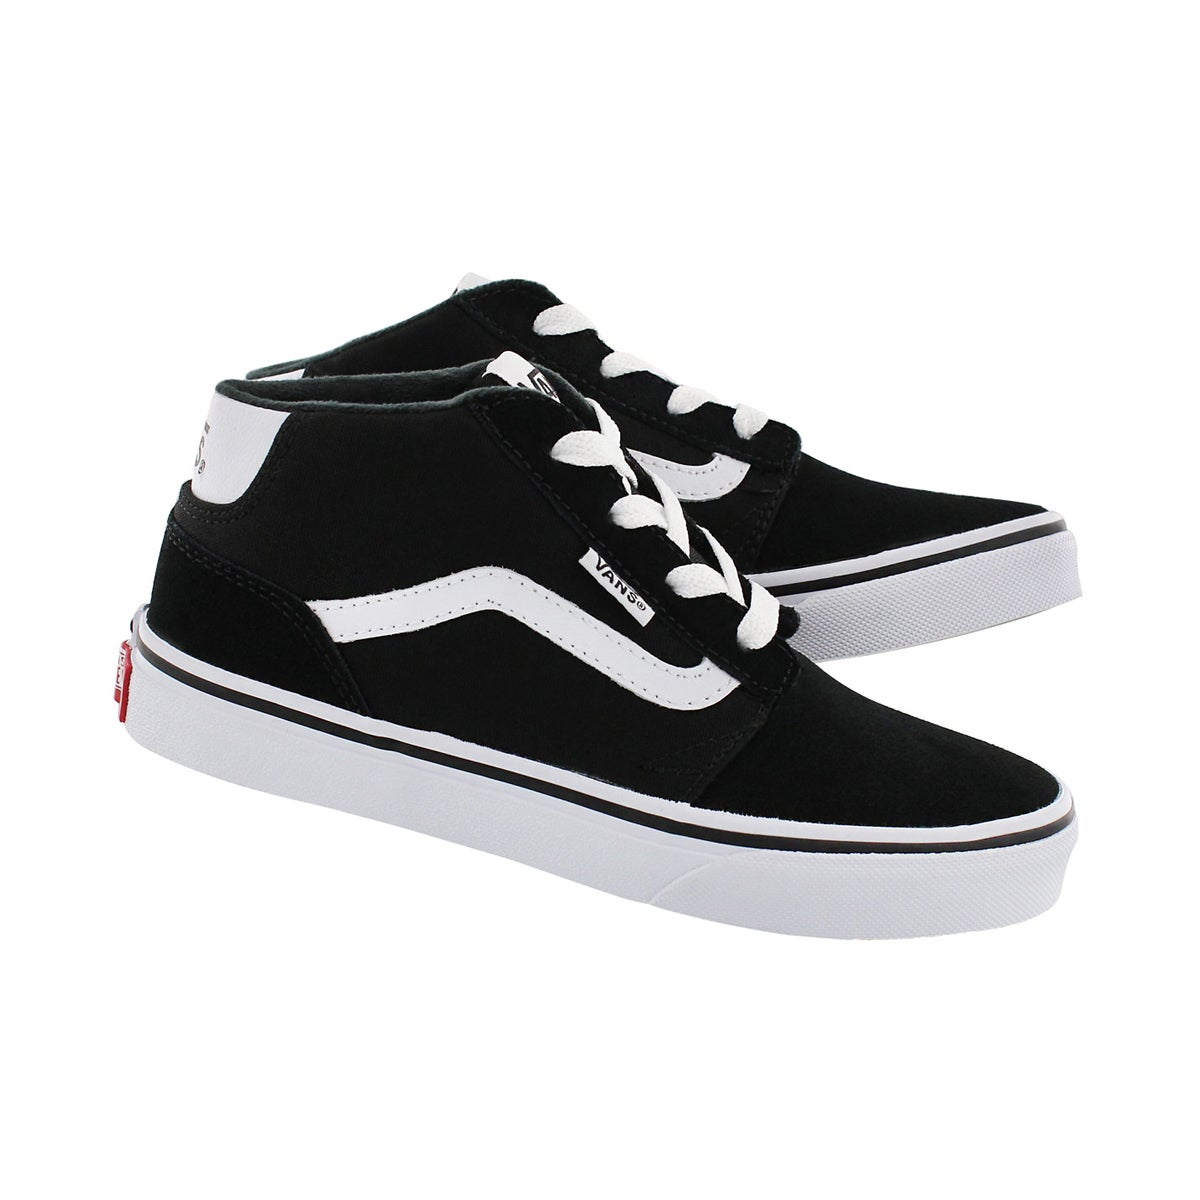 Bys Chapman Mid blk/wht lace up sneaker